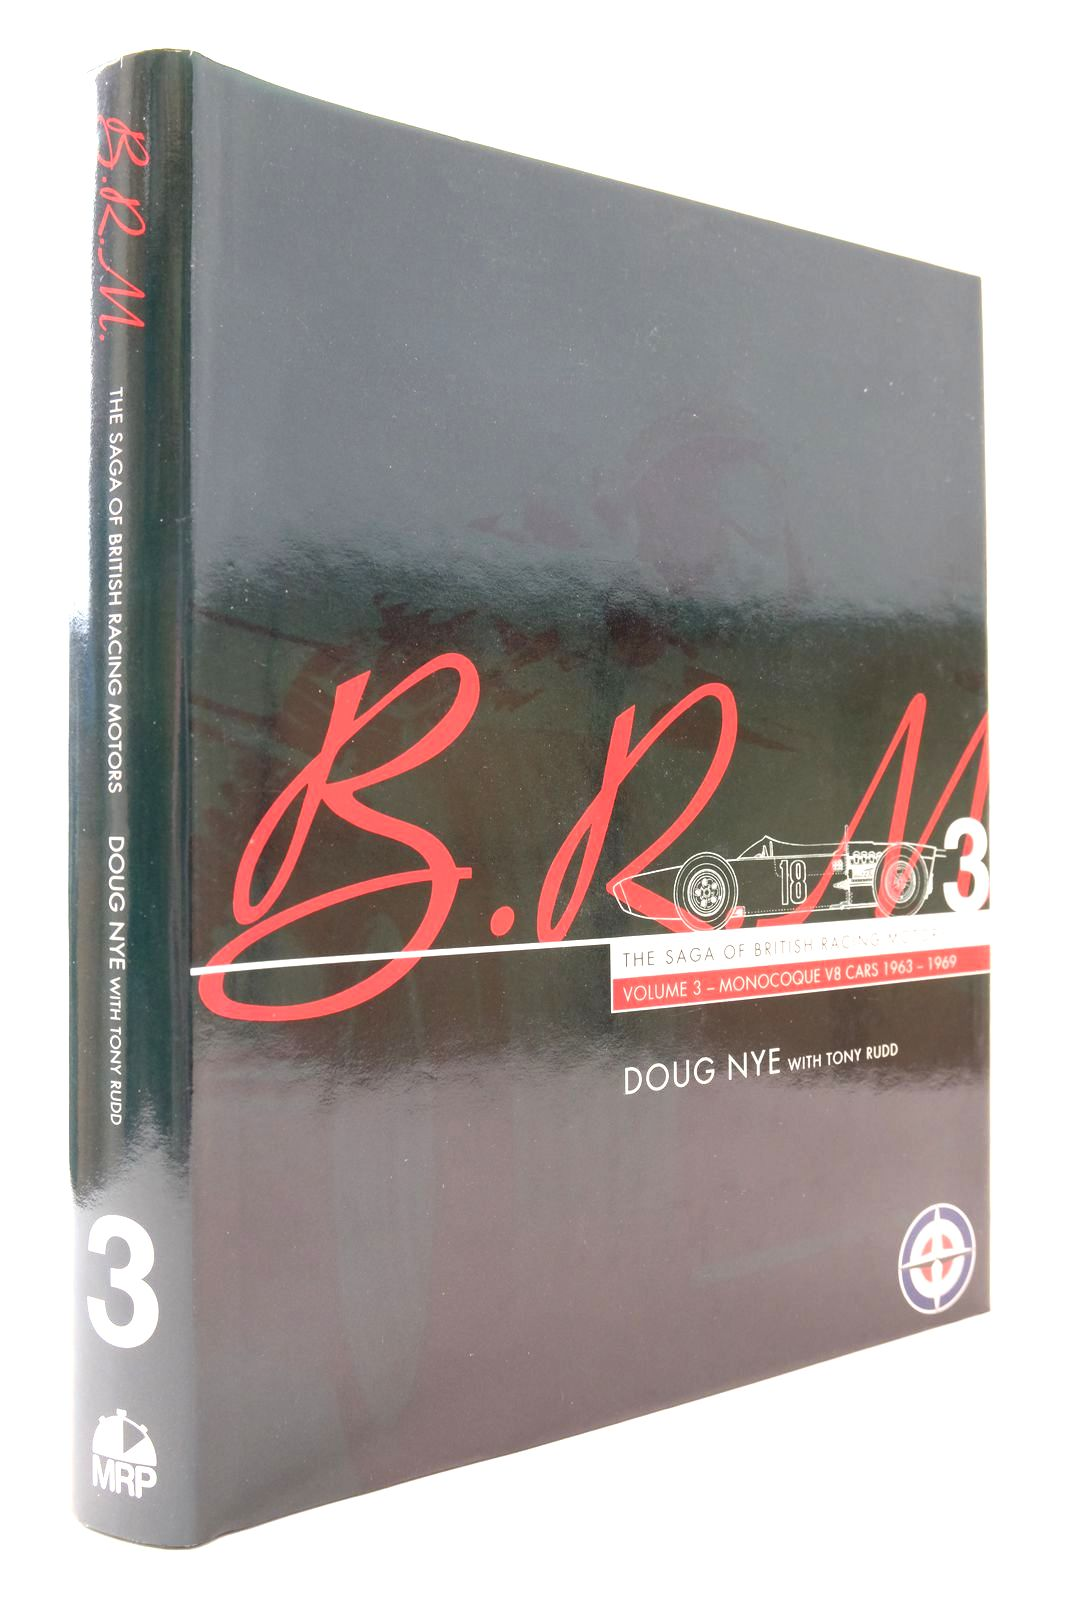 Photo of B.R.M. THE SAGA OF BRITISH RACING MOTORS VOLUME 3 written by Nye, Doug Rudd, Tony published by Motor Racing Publications Ltd. (STOCK CODE: 2132982)  for sale by Stella & Rose's Books